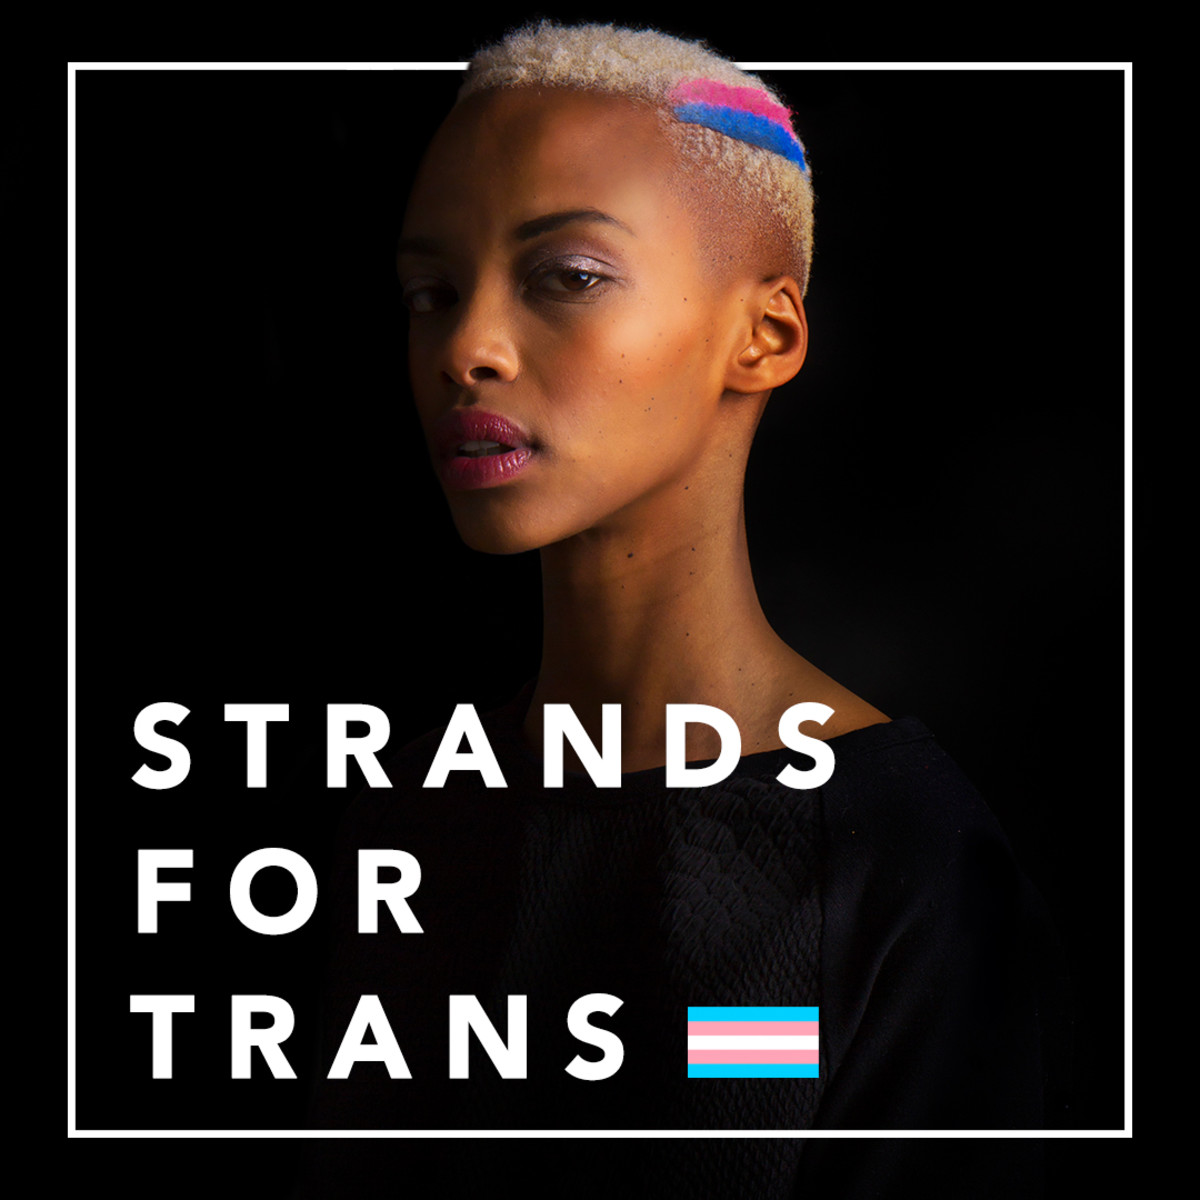 Photo: Courtesy of Strands for Trans